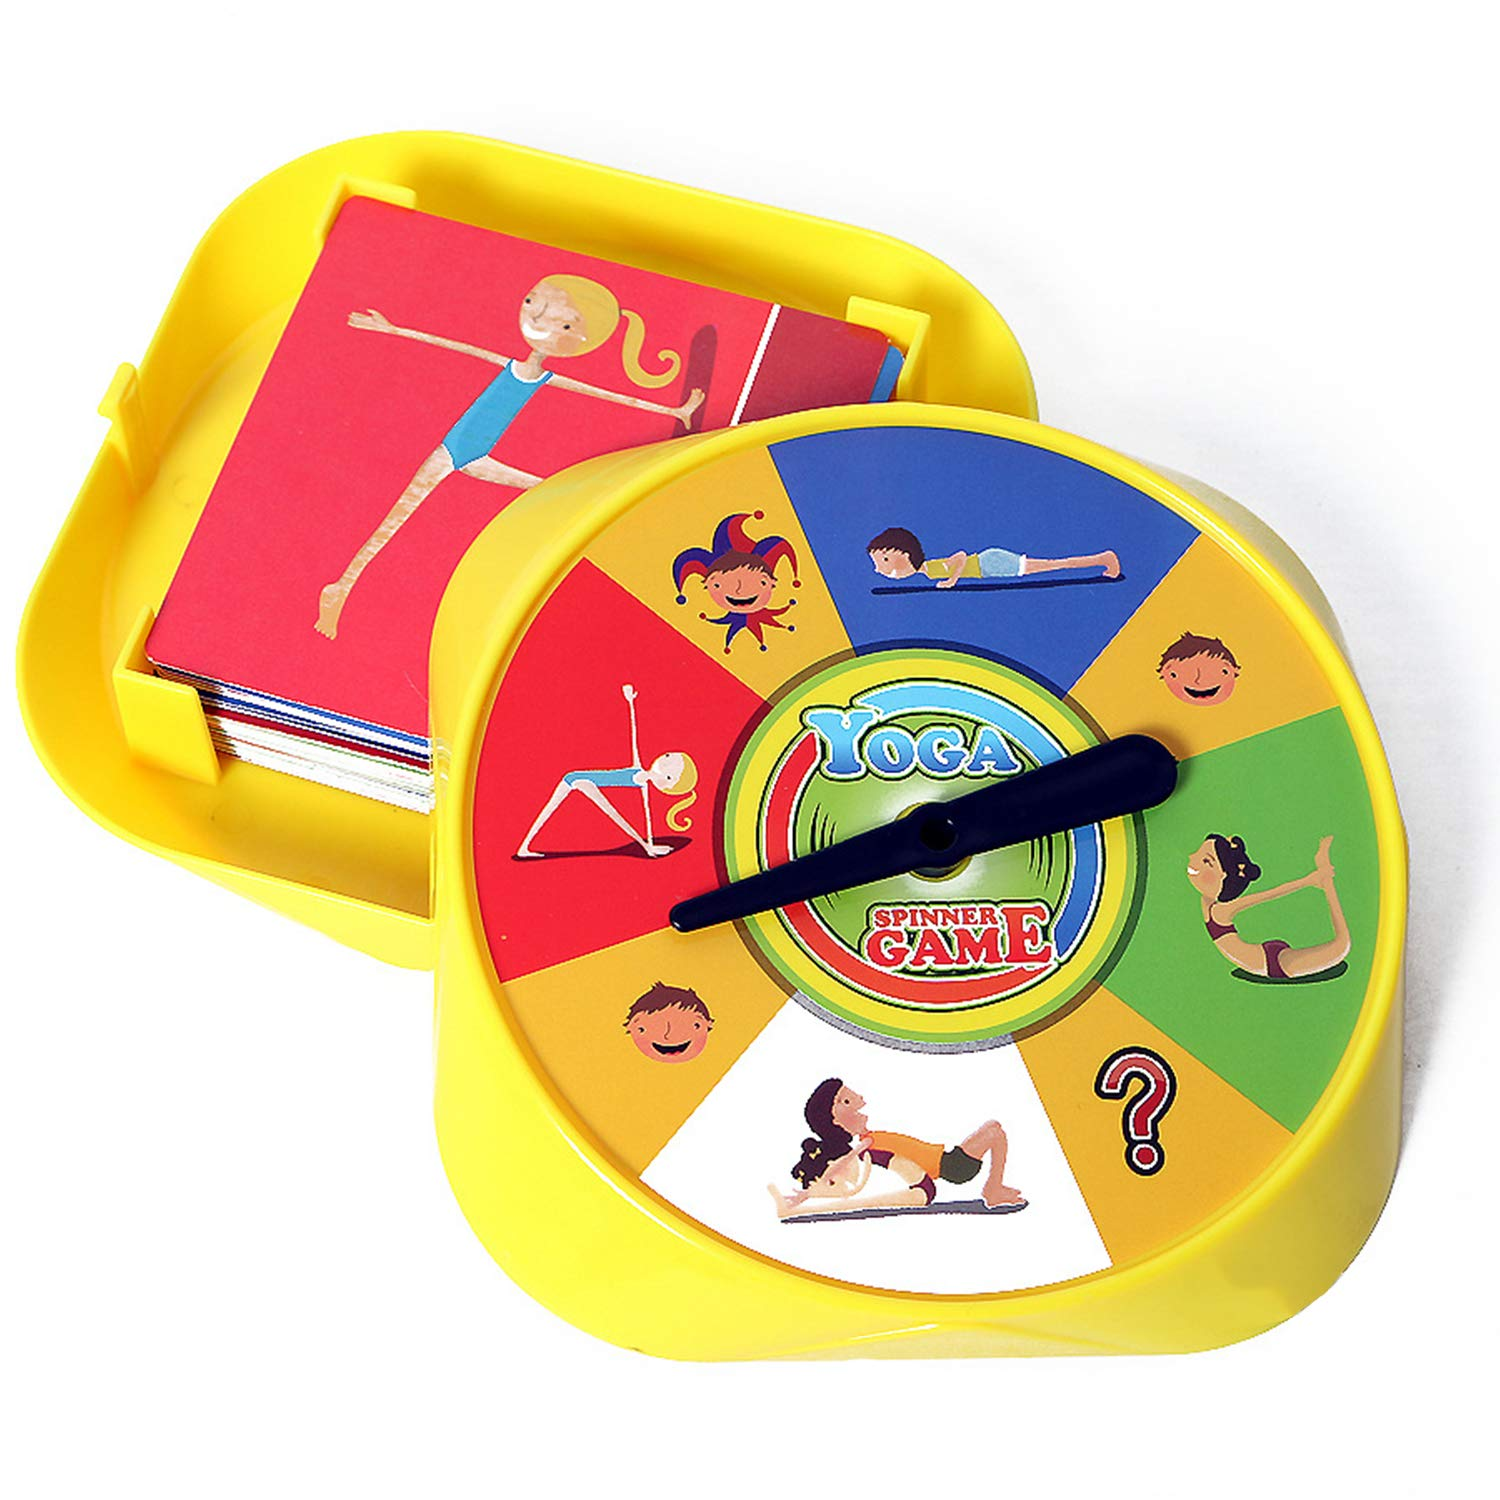 Moonlove Yoga Spinner Game 54 Yoga Pose Cards for 2-4 Players Educational Toy Desktop Game for Kids Age Over 5 Years Old